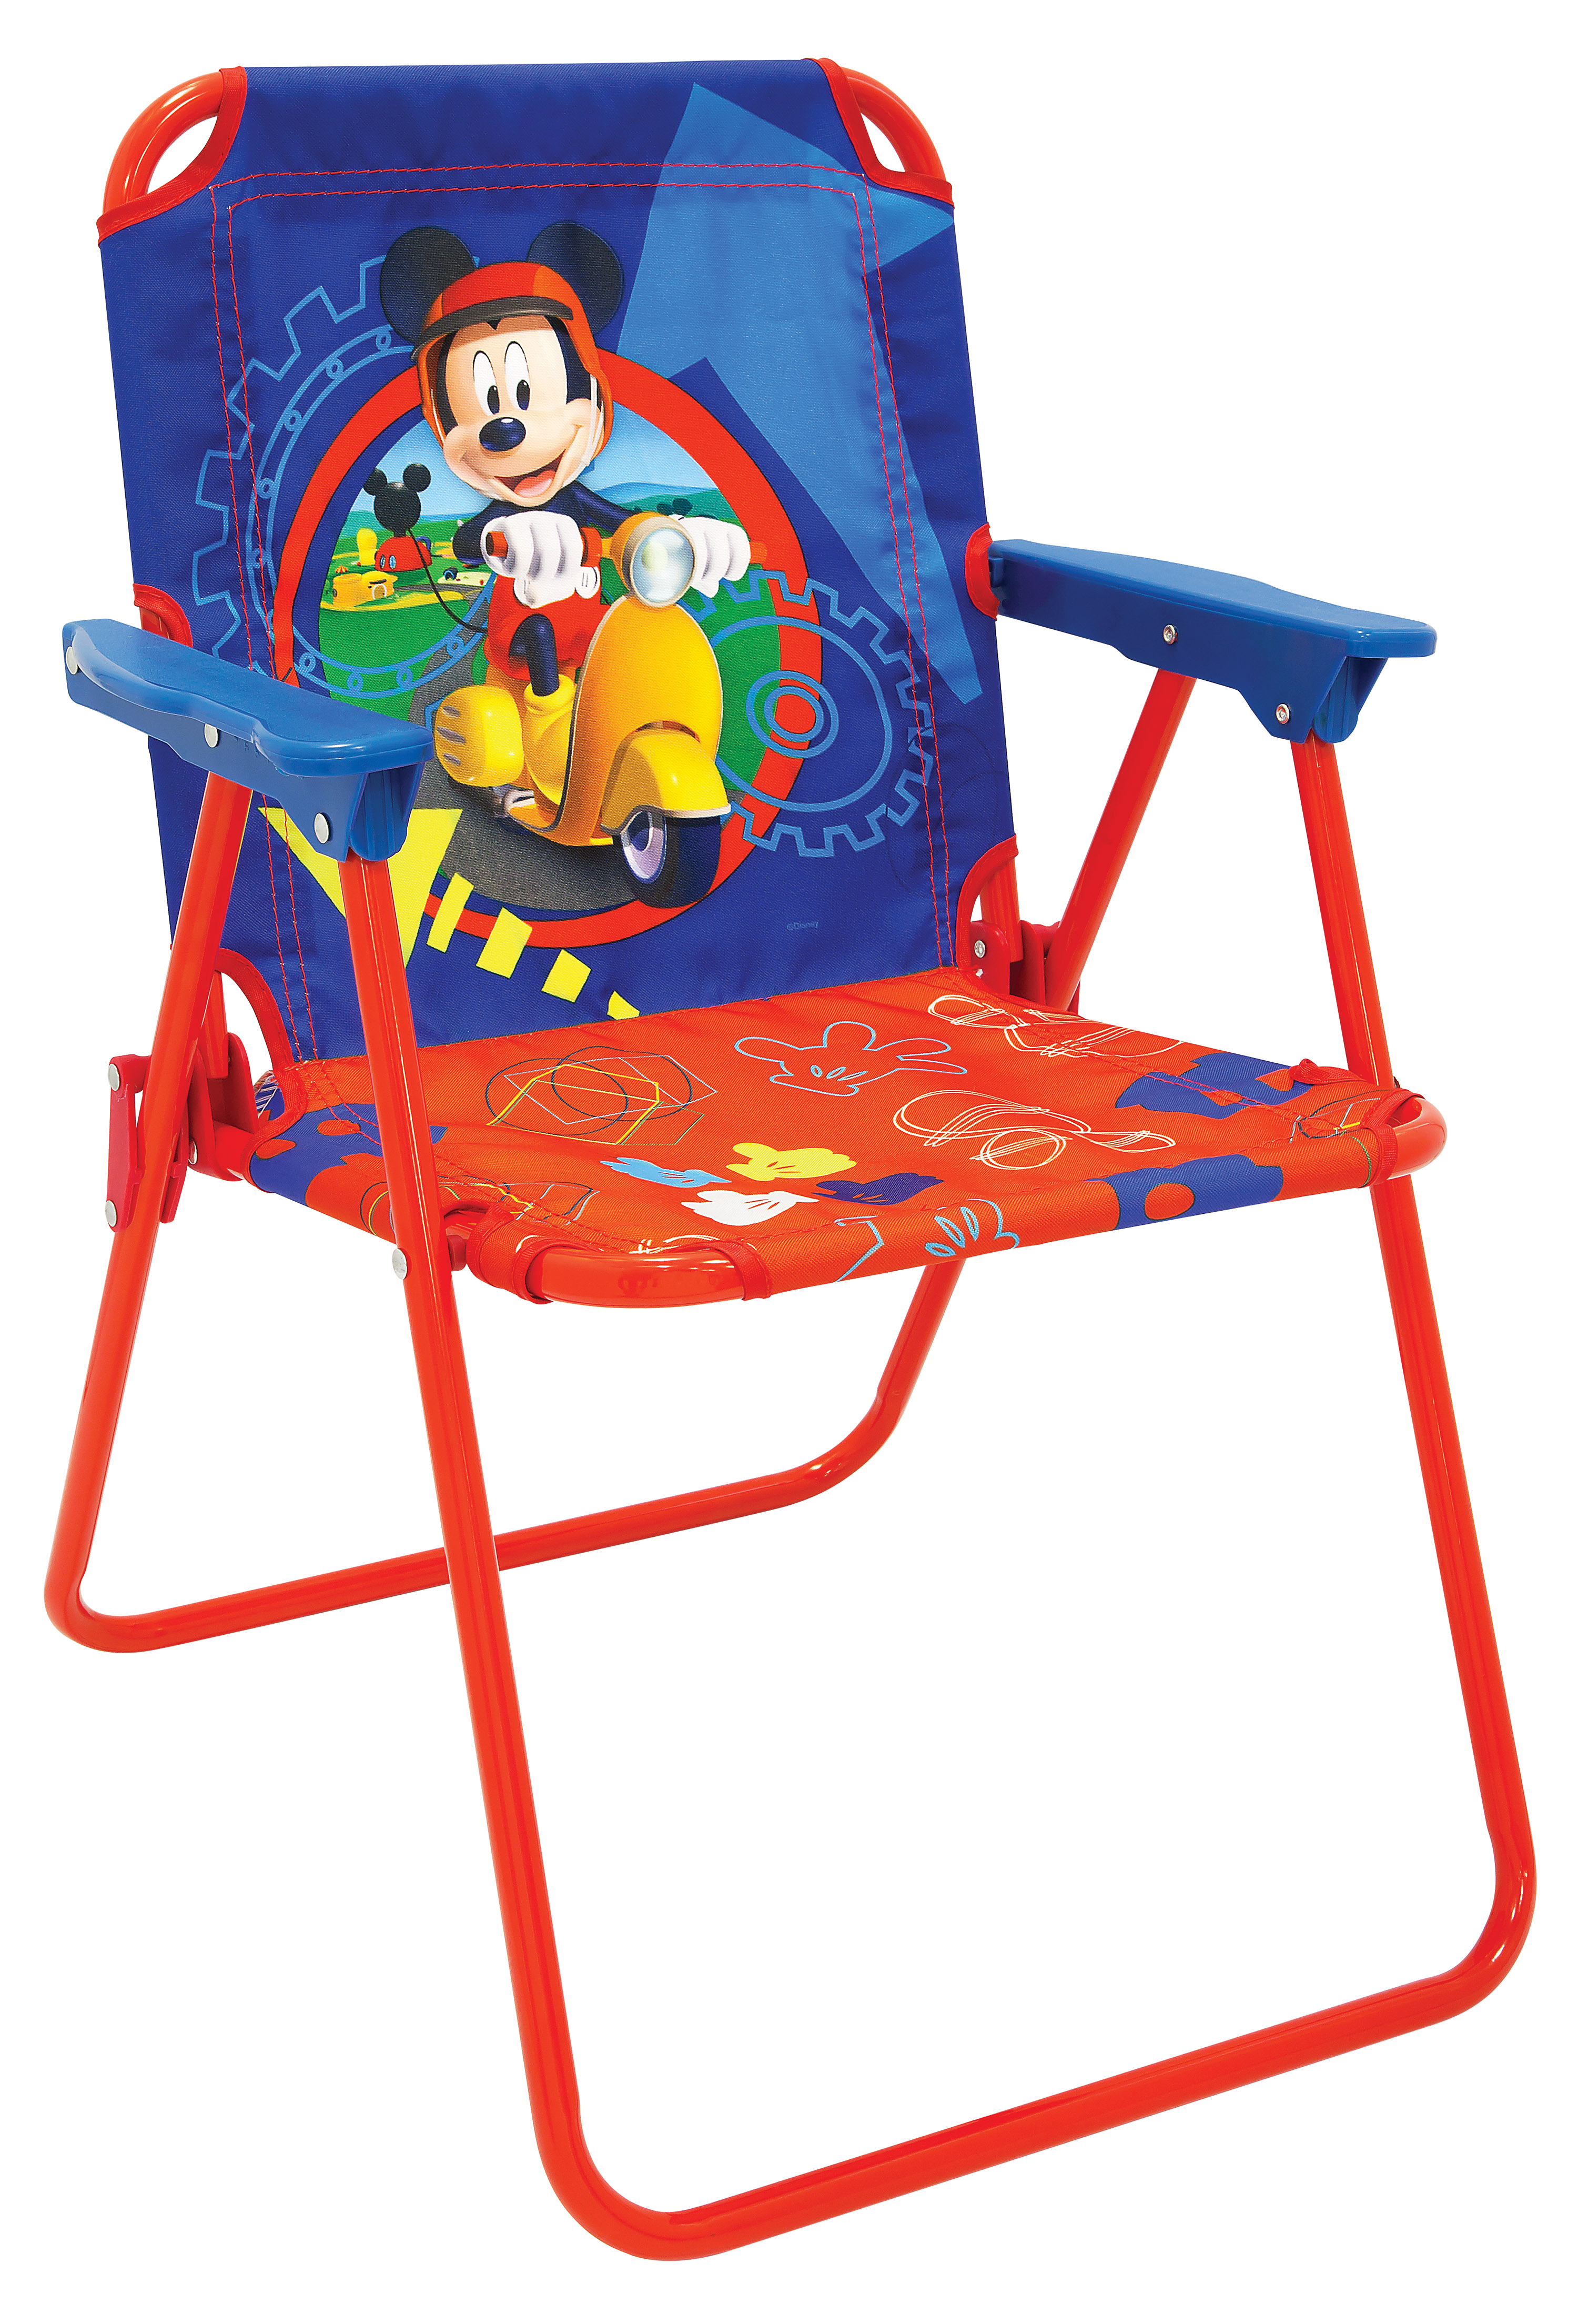 mickey mouse chairs and table bedroom chair freedom colored folding outdoor furniture kmart